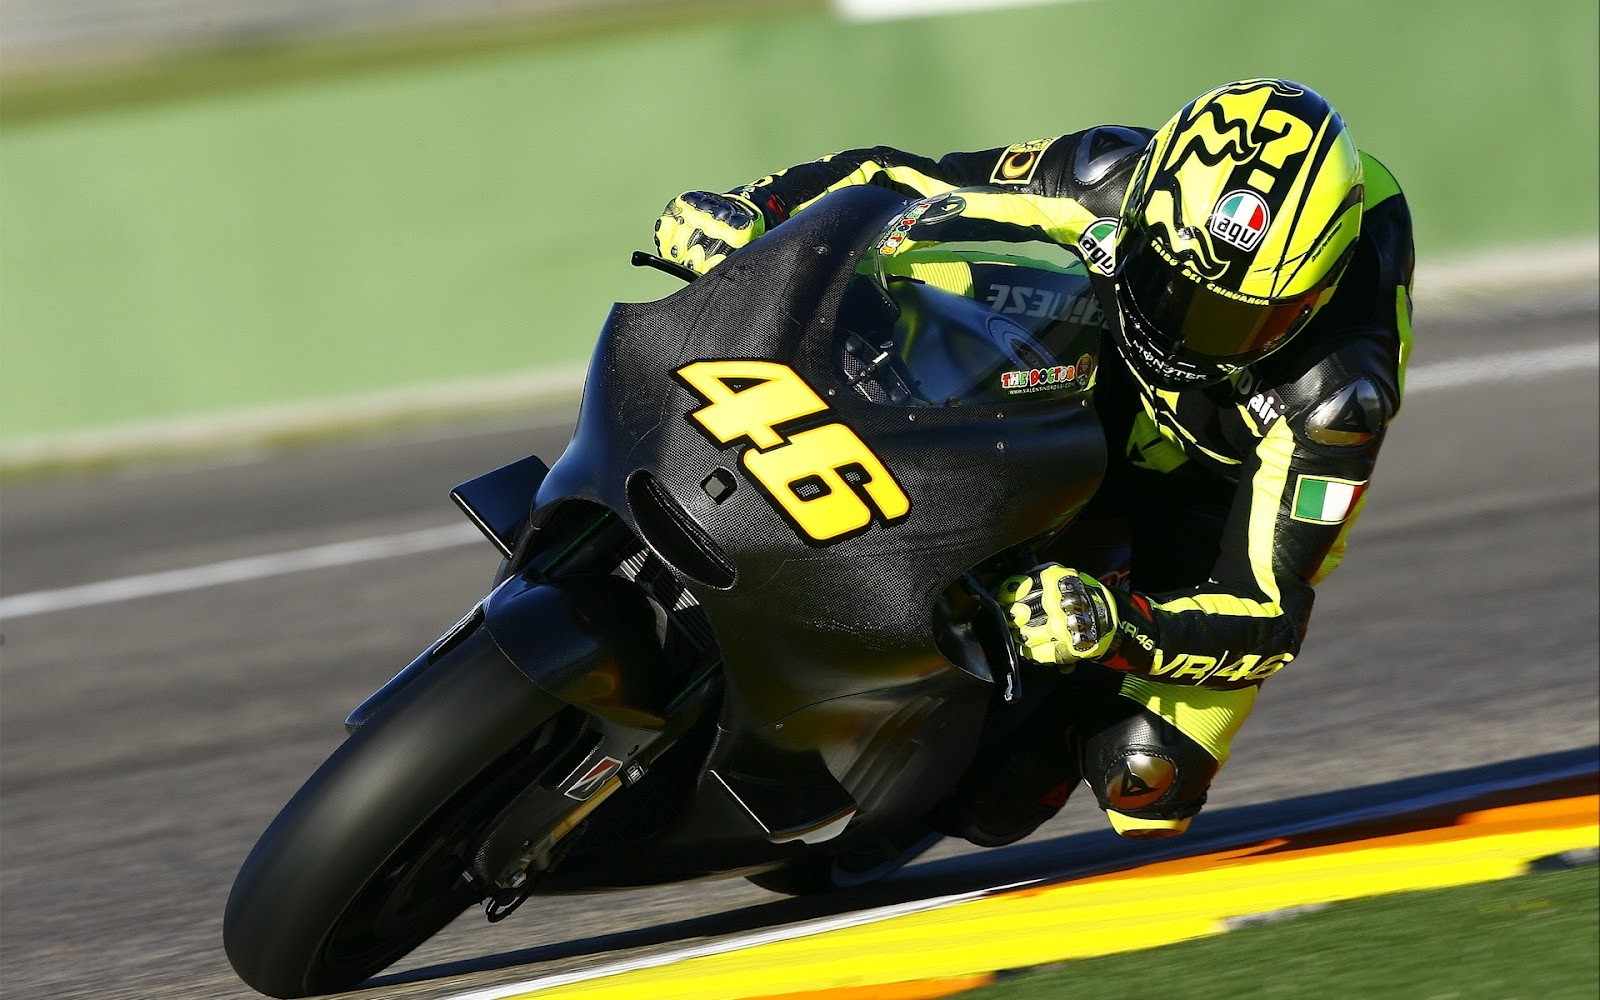 valentino rossi race Valentino Rossi wallpapers in HD